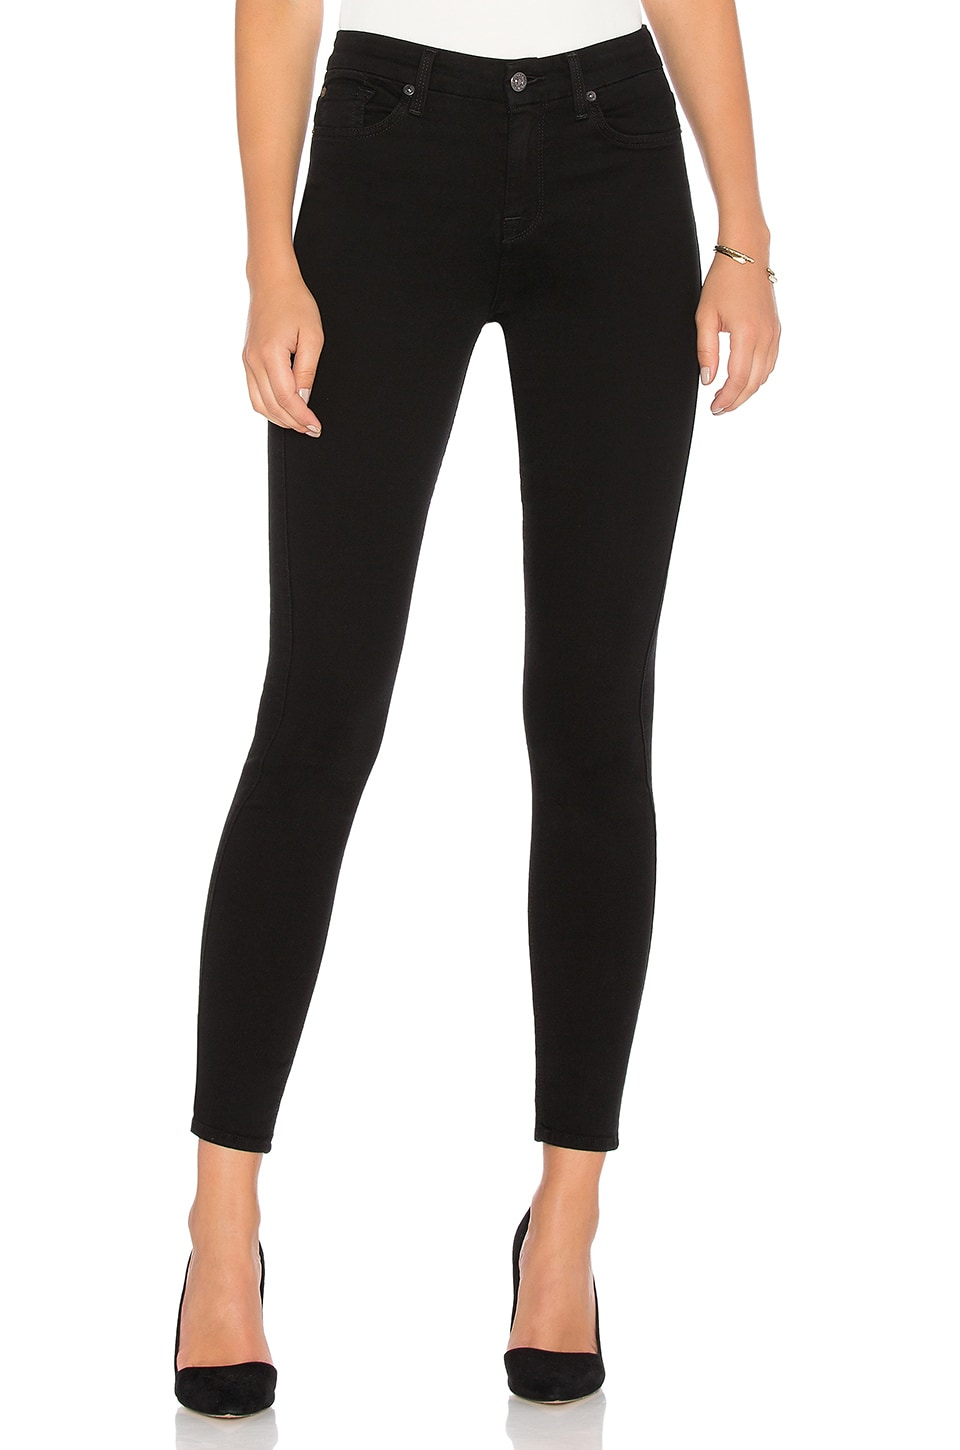 7 For All Mankind The HW Skinny in B(air) Black